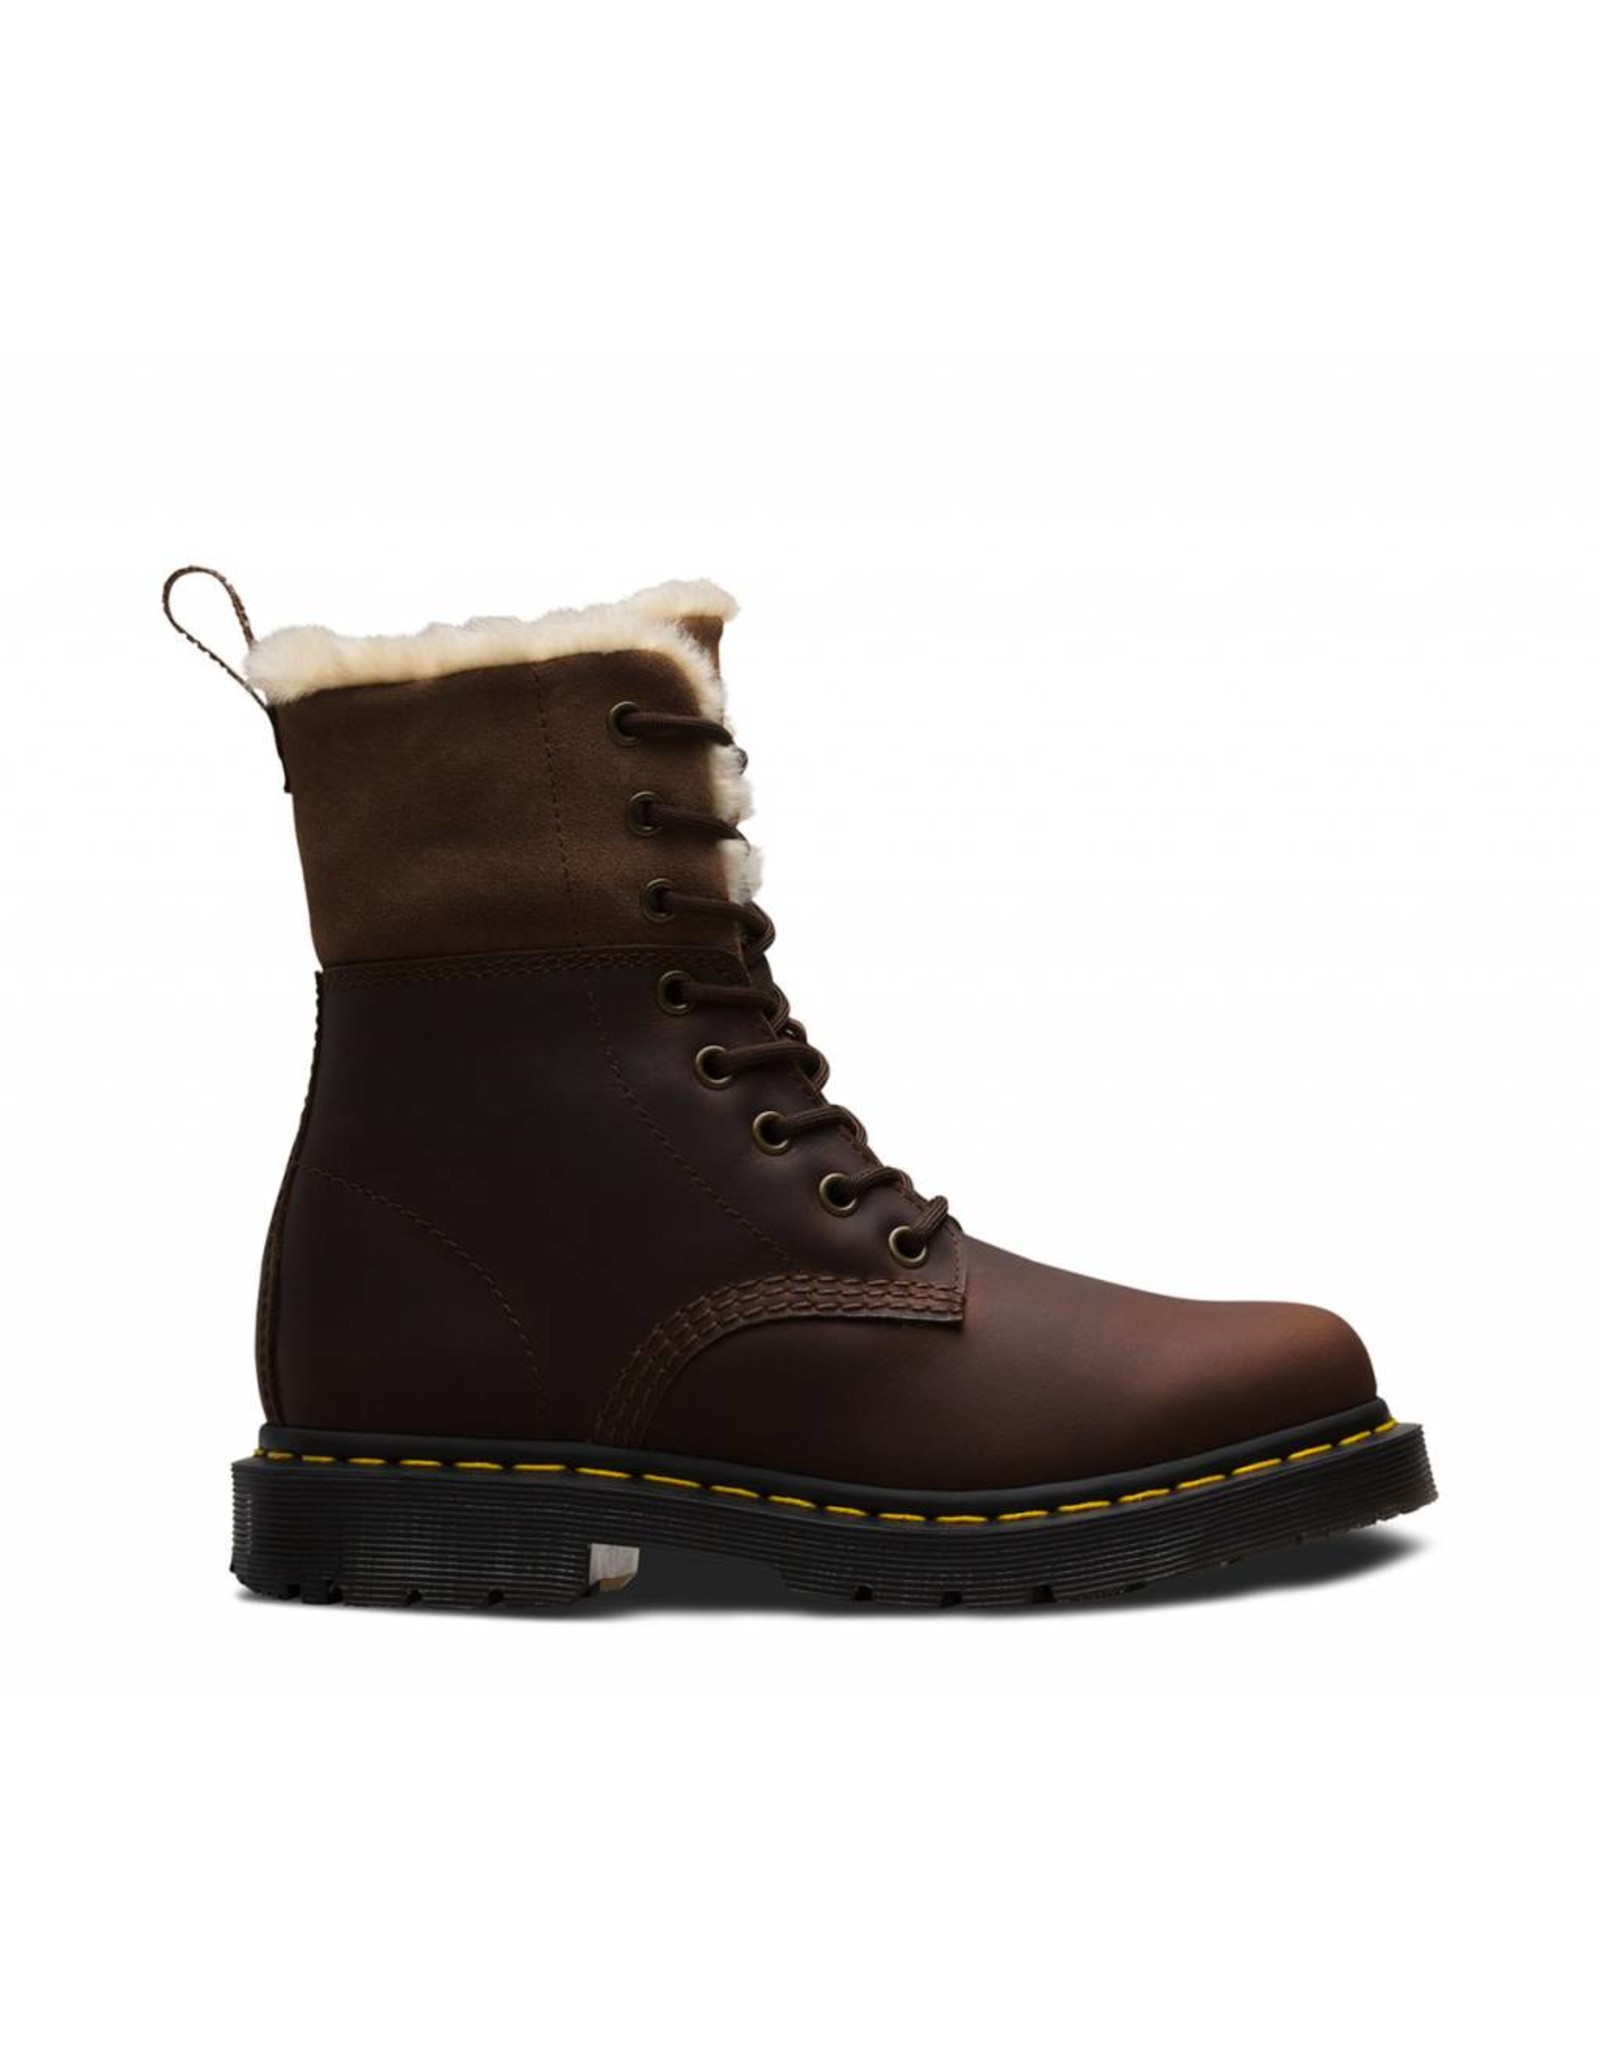 DR. MARTENS 1460 KOLBERT DARK BROWN SNOWPLOW WP WATERPROOF SUEDE 815KSDB-R24014201